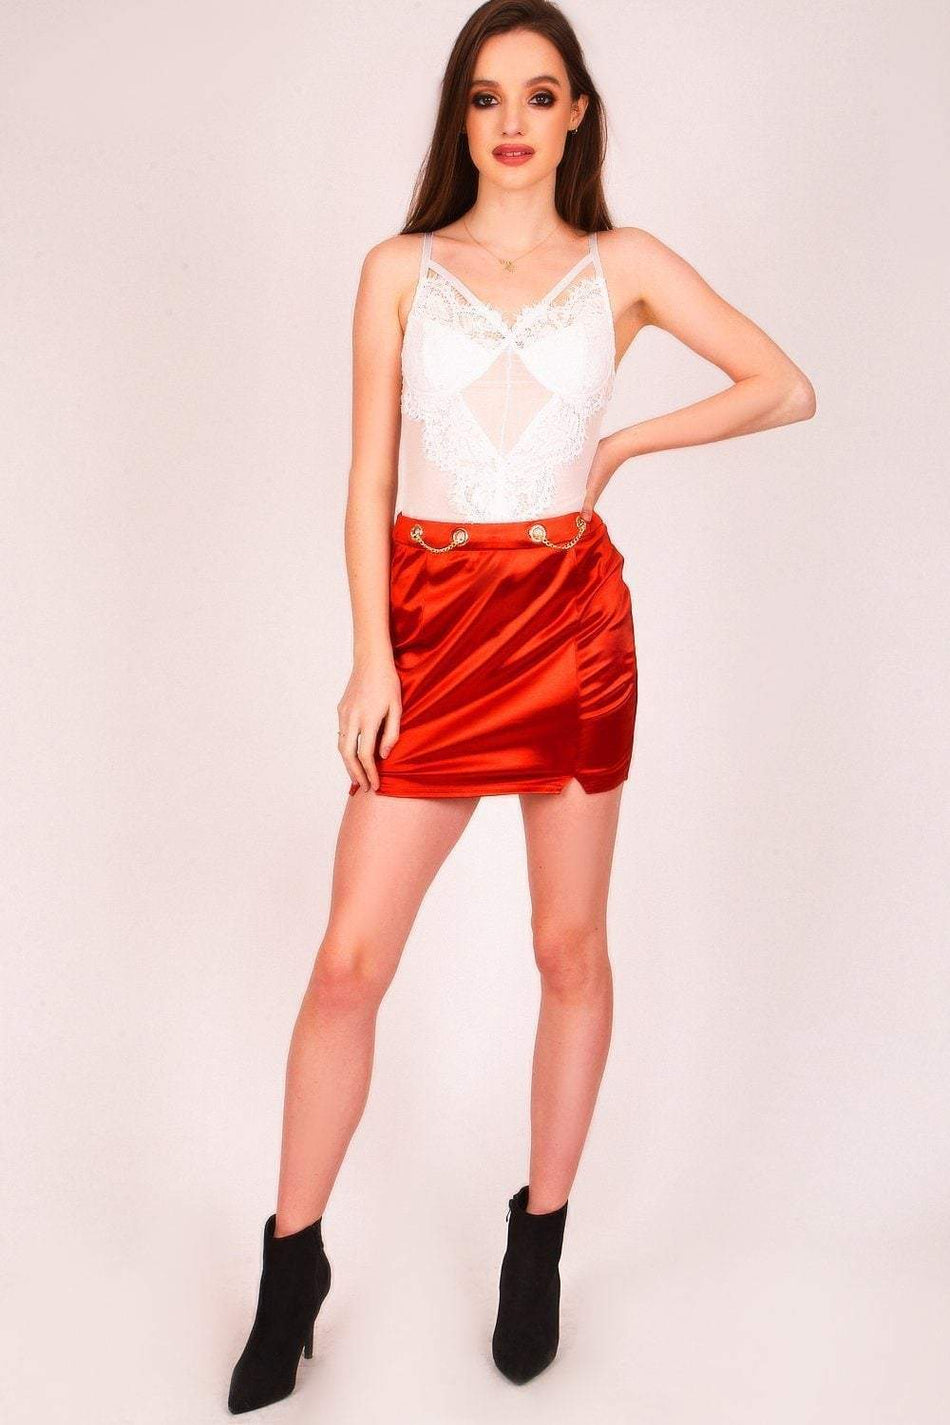 Burnt Orange Chain Detail Mini Skirt - KATCH ME